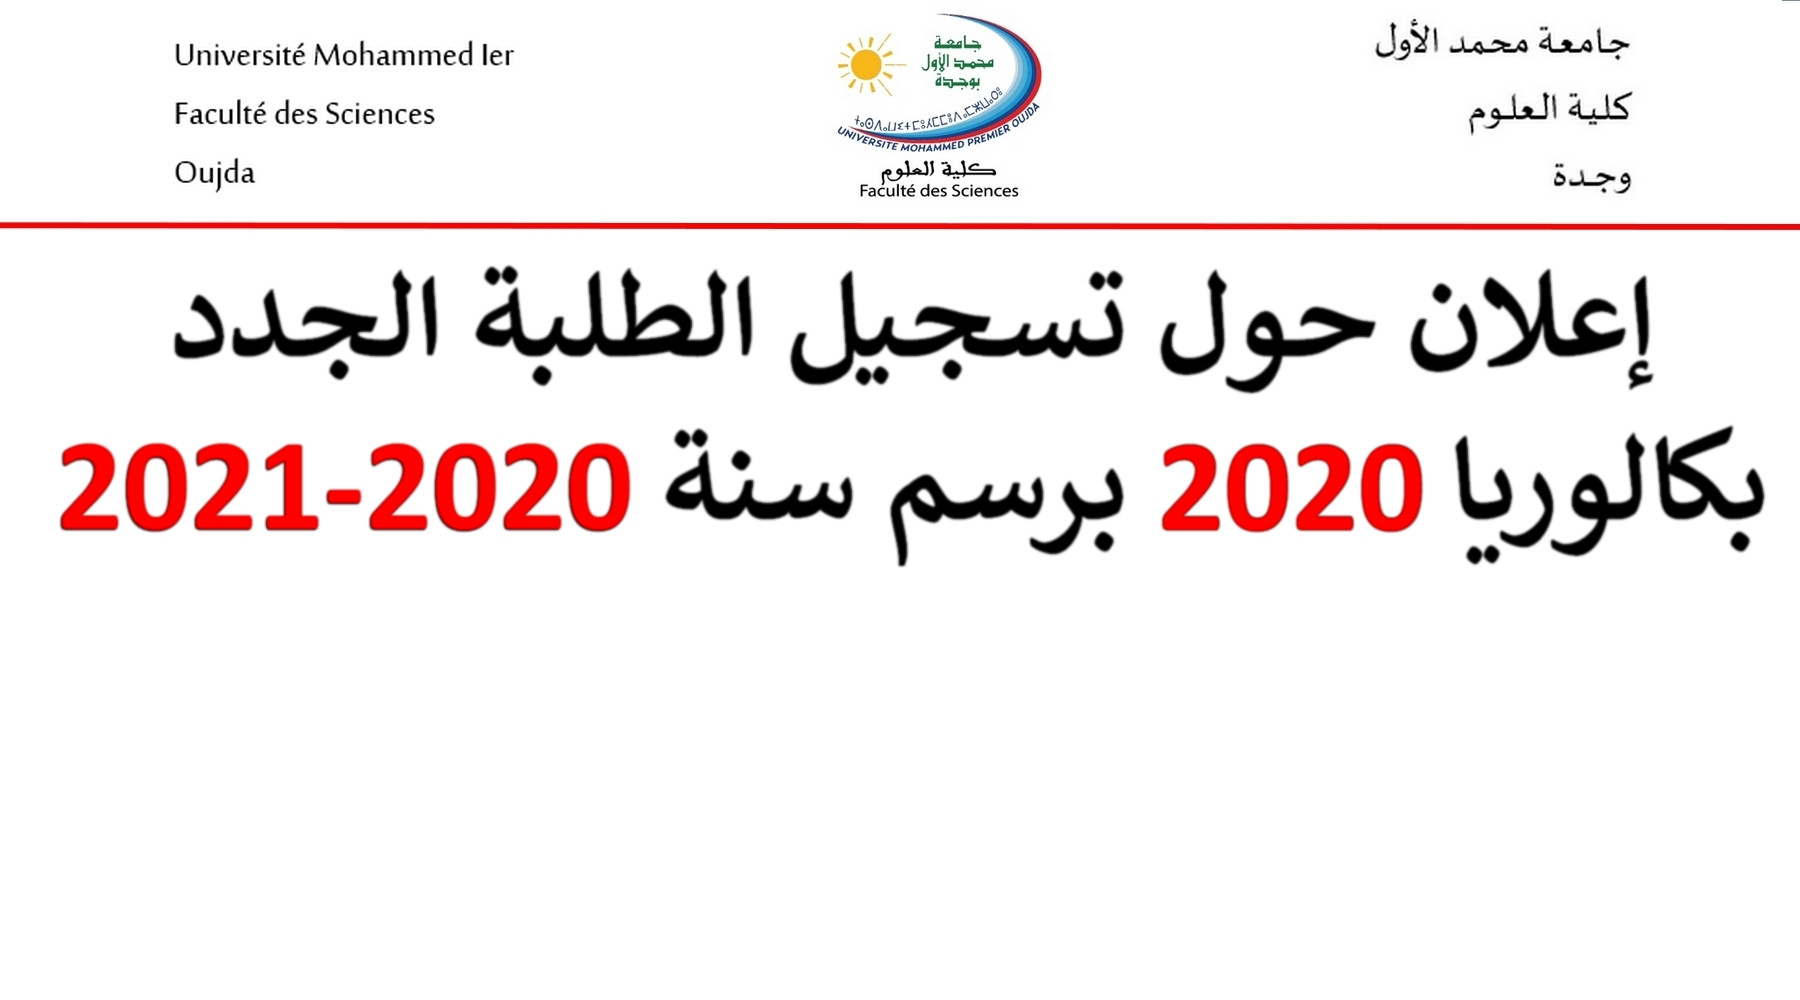 pré inscription ump oujda 2020/2021